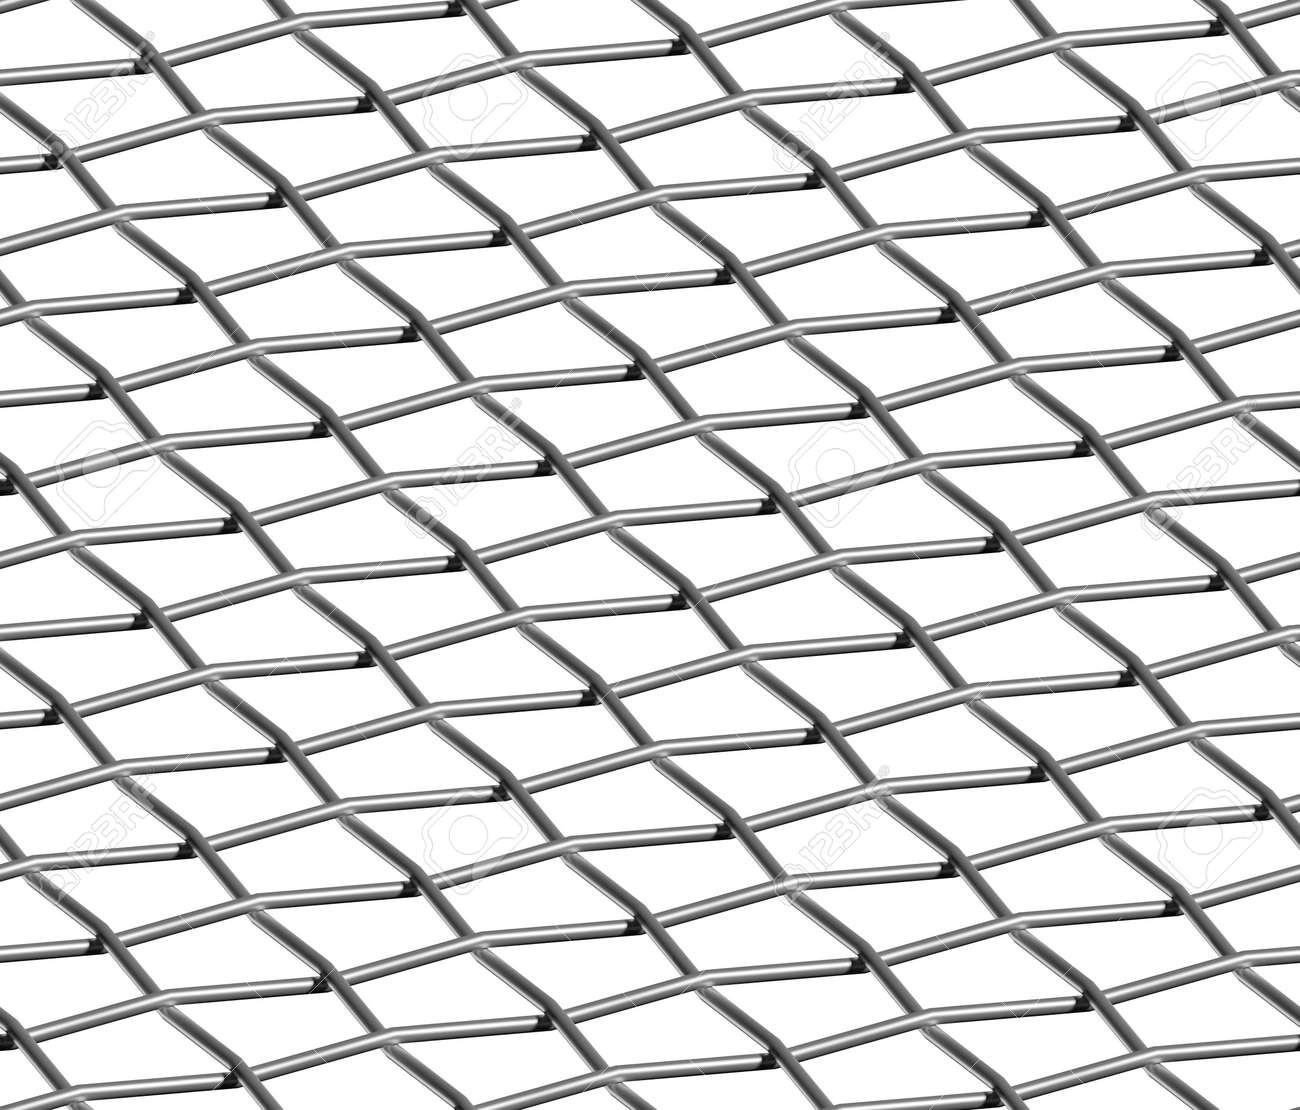 hight resolution of braided wire steel net on white industrial abstract textured seamless background stock photo 18376895